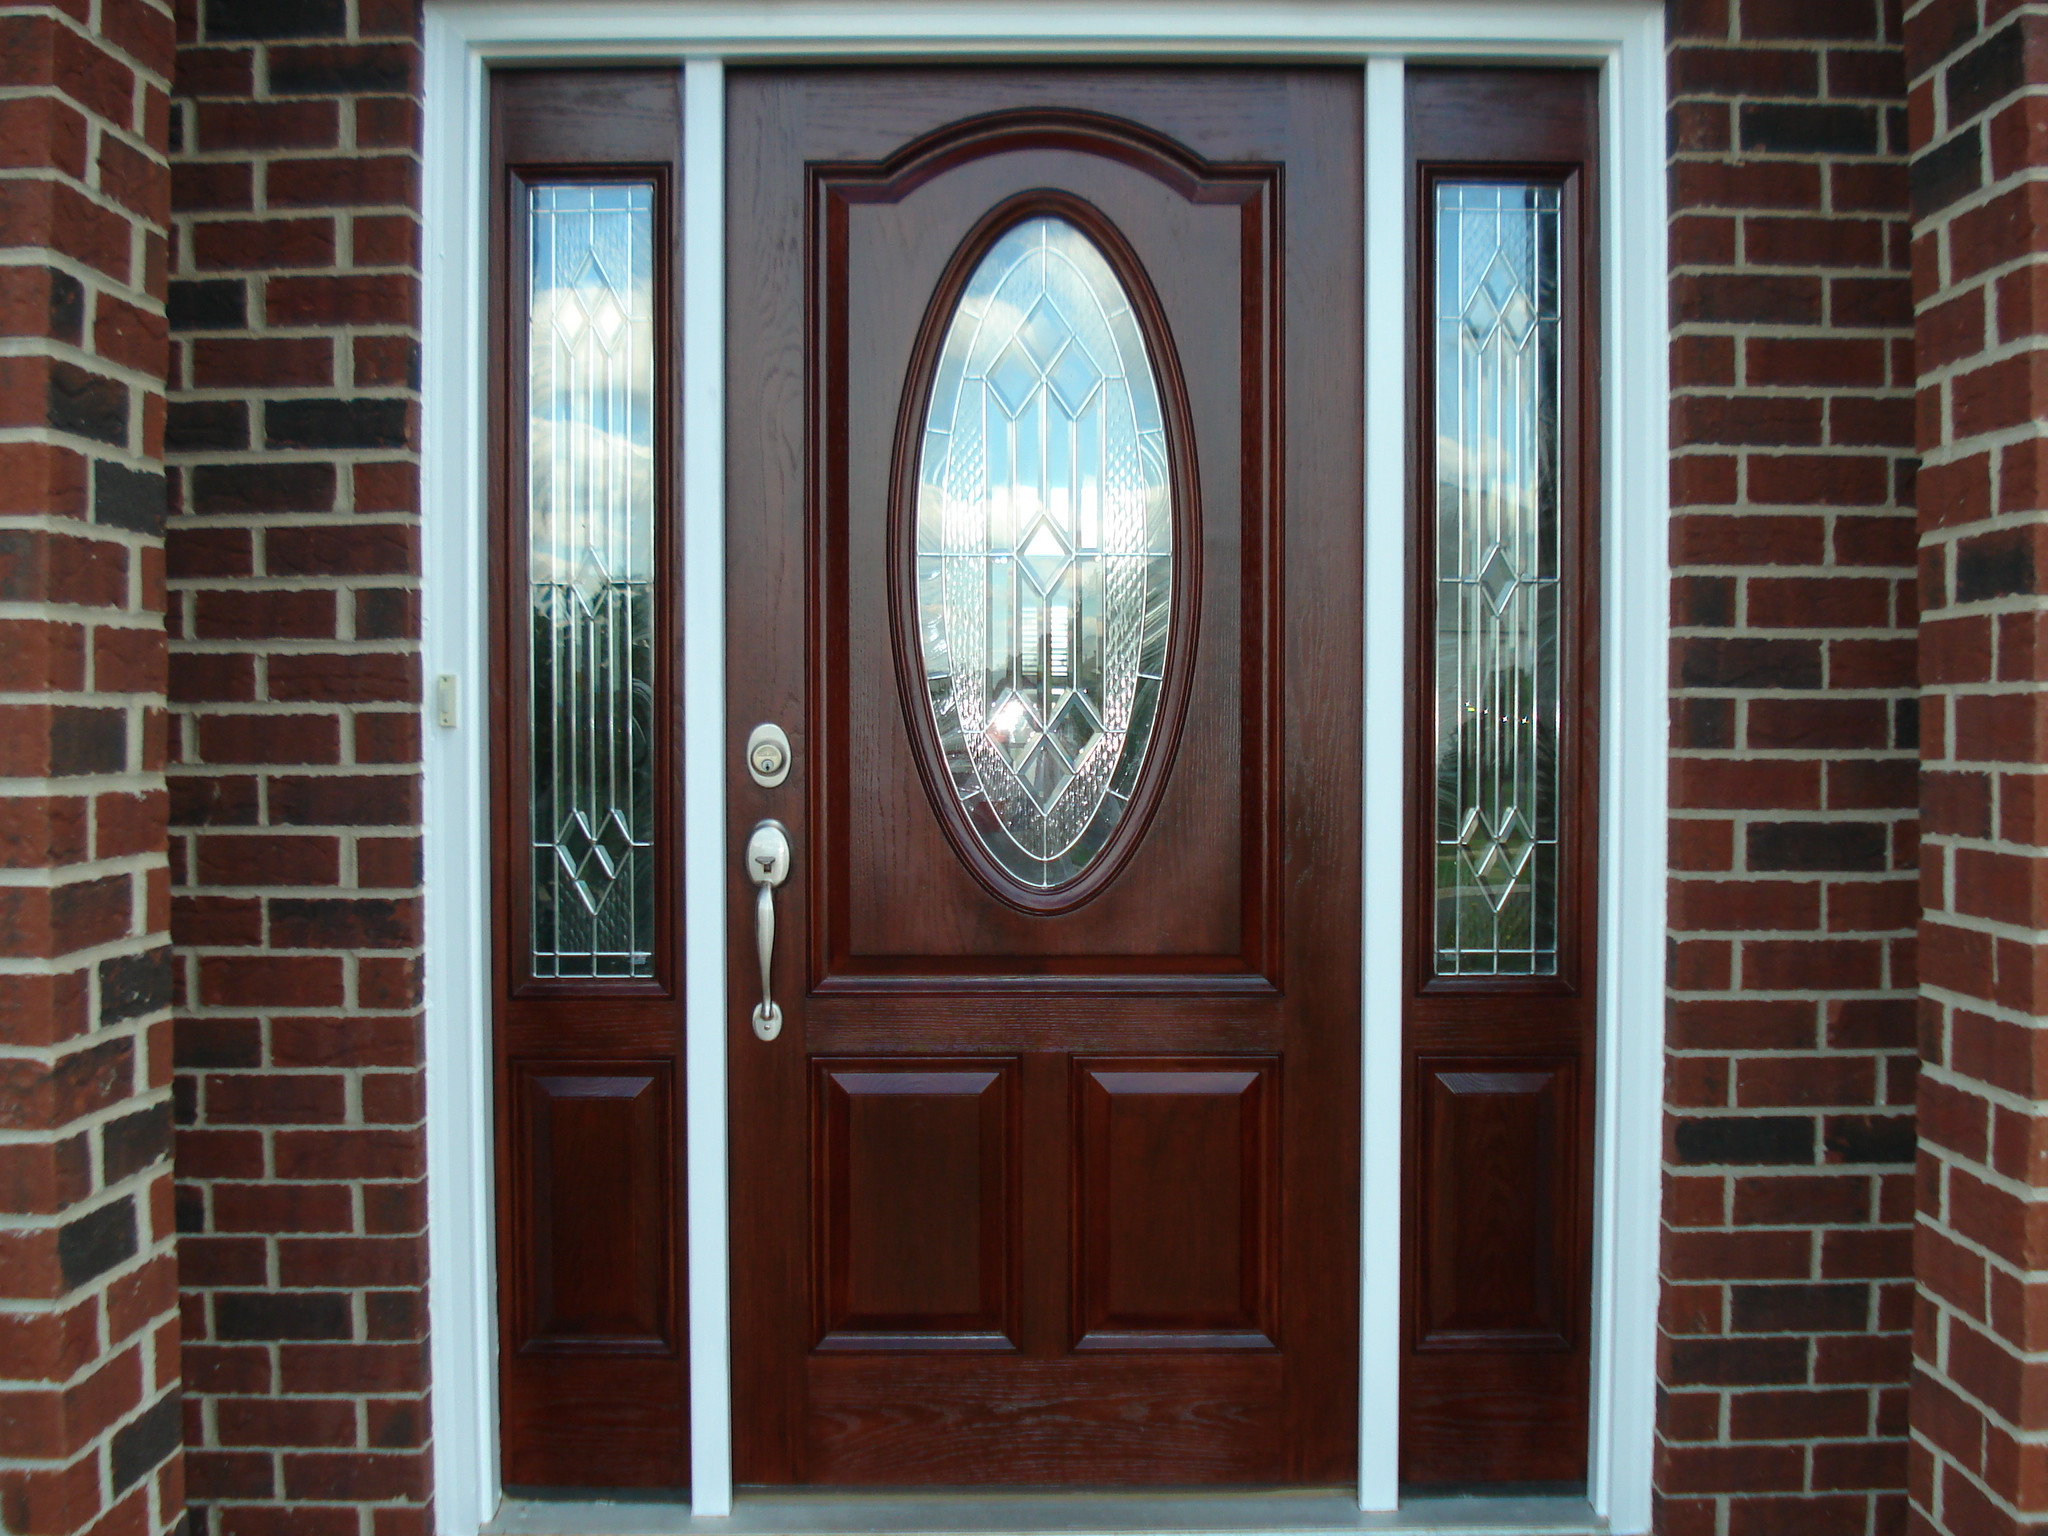 Hardwood Floor Refinishing Naperville Il Of Door Painting Refinishing Installation Front Doors within Door4